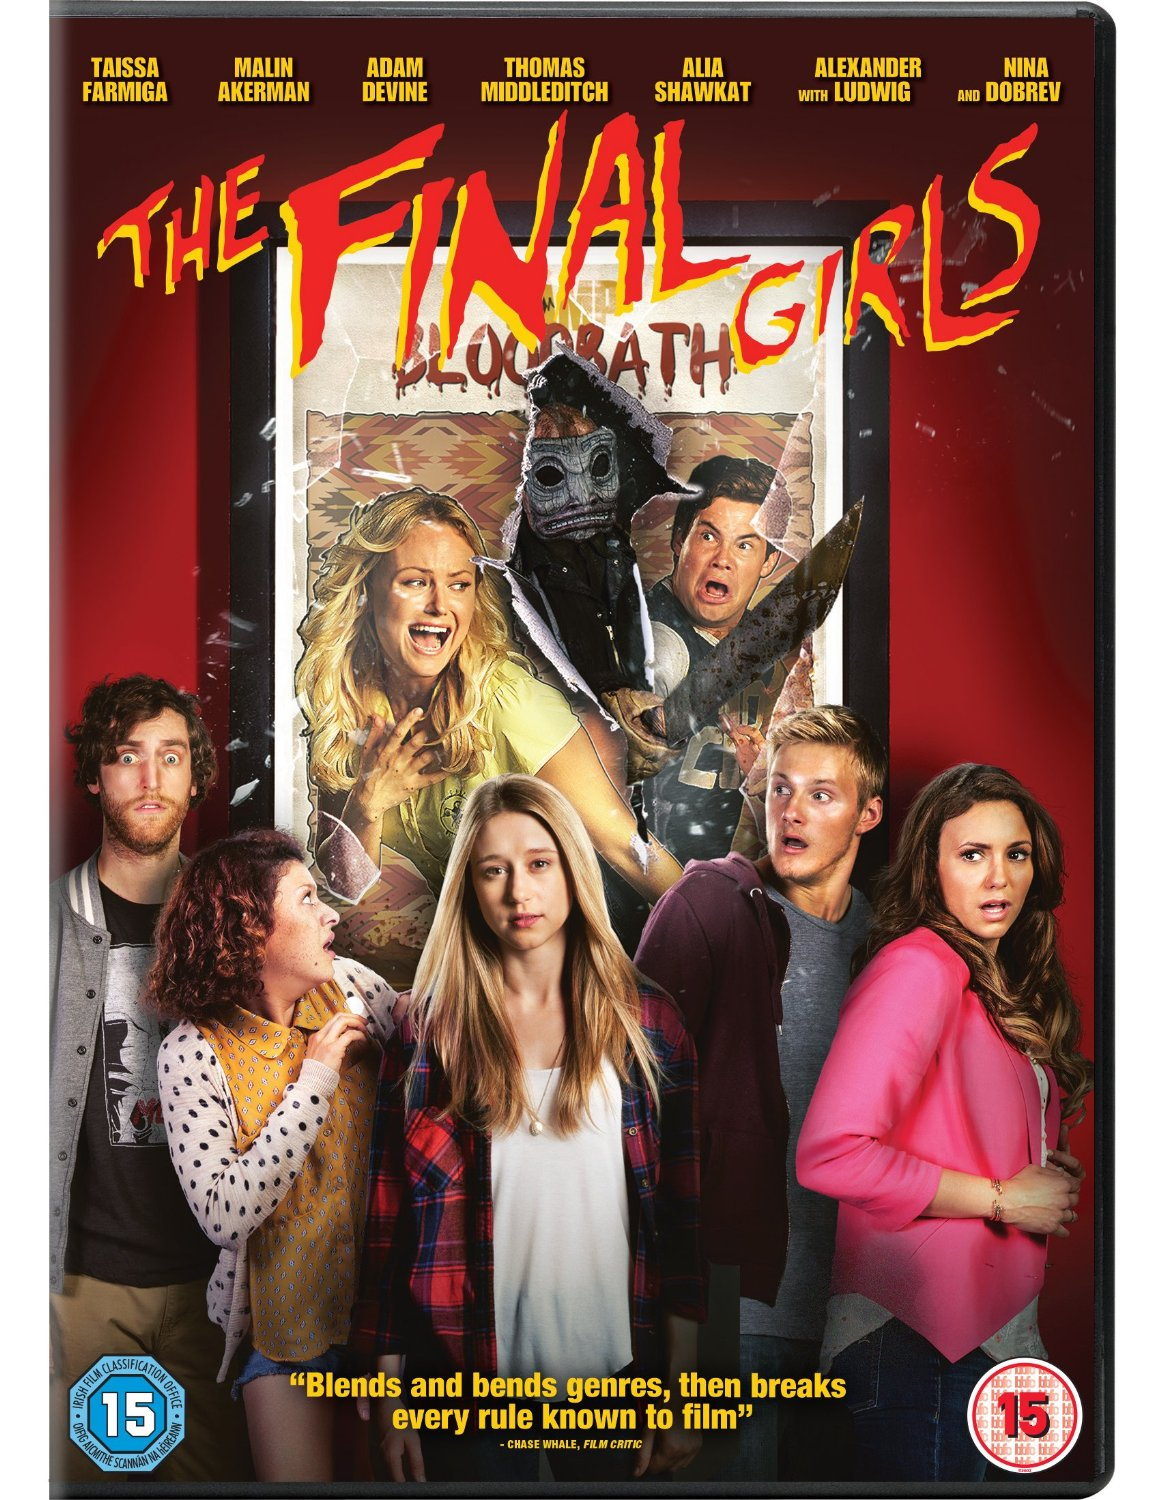 The Final Girls DVD review: ace meta horror comedy